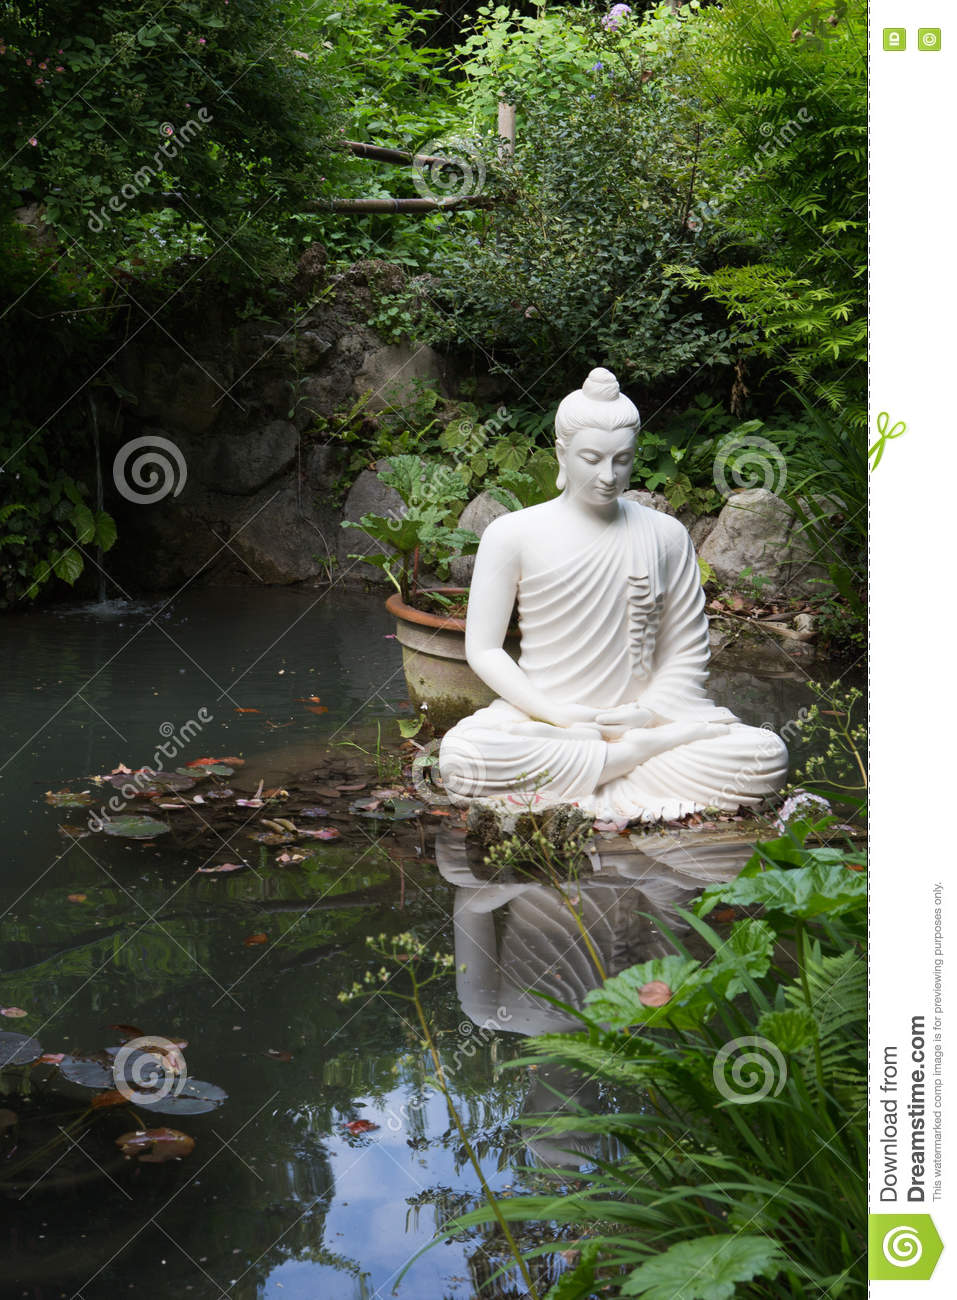 Buddha Statue In Andre Heller Garden Stock Photo Image 73010337